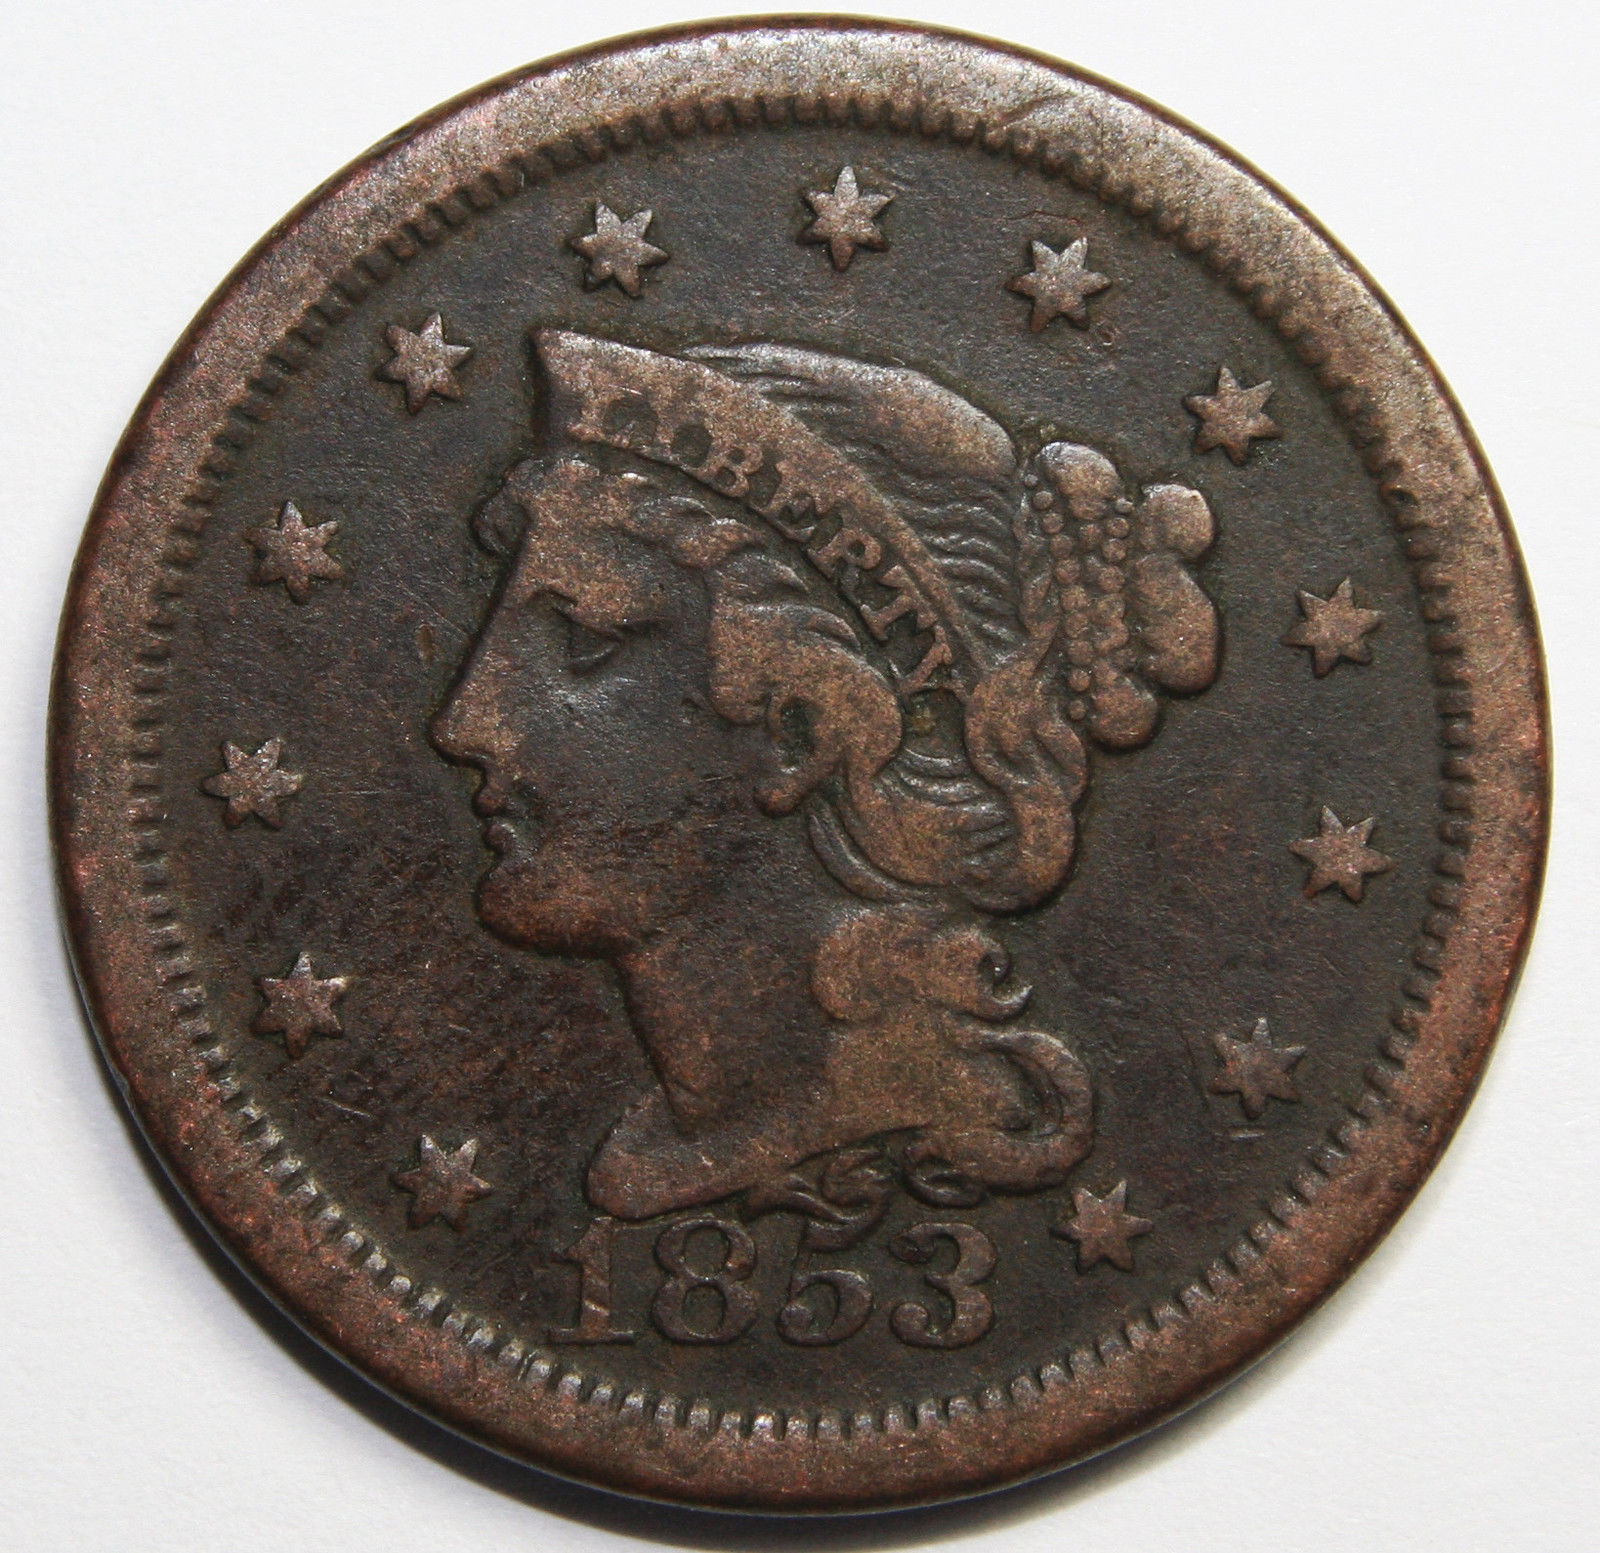 1853 Large Cent Liberty Braided Hair Head Coin Lot # MZ 4102